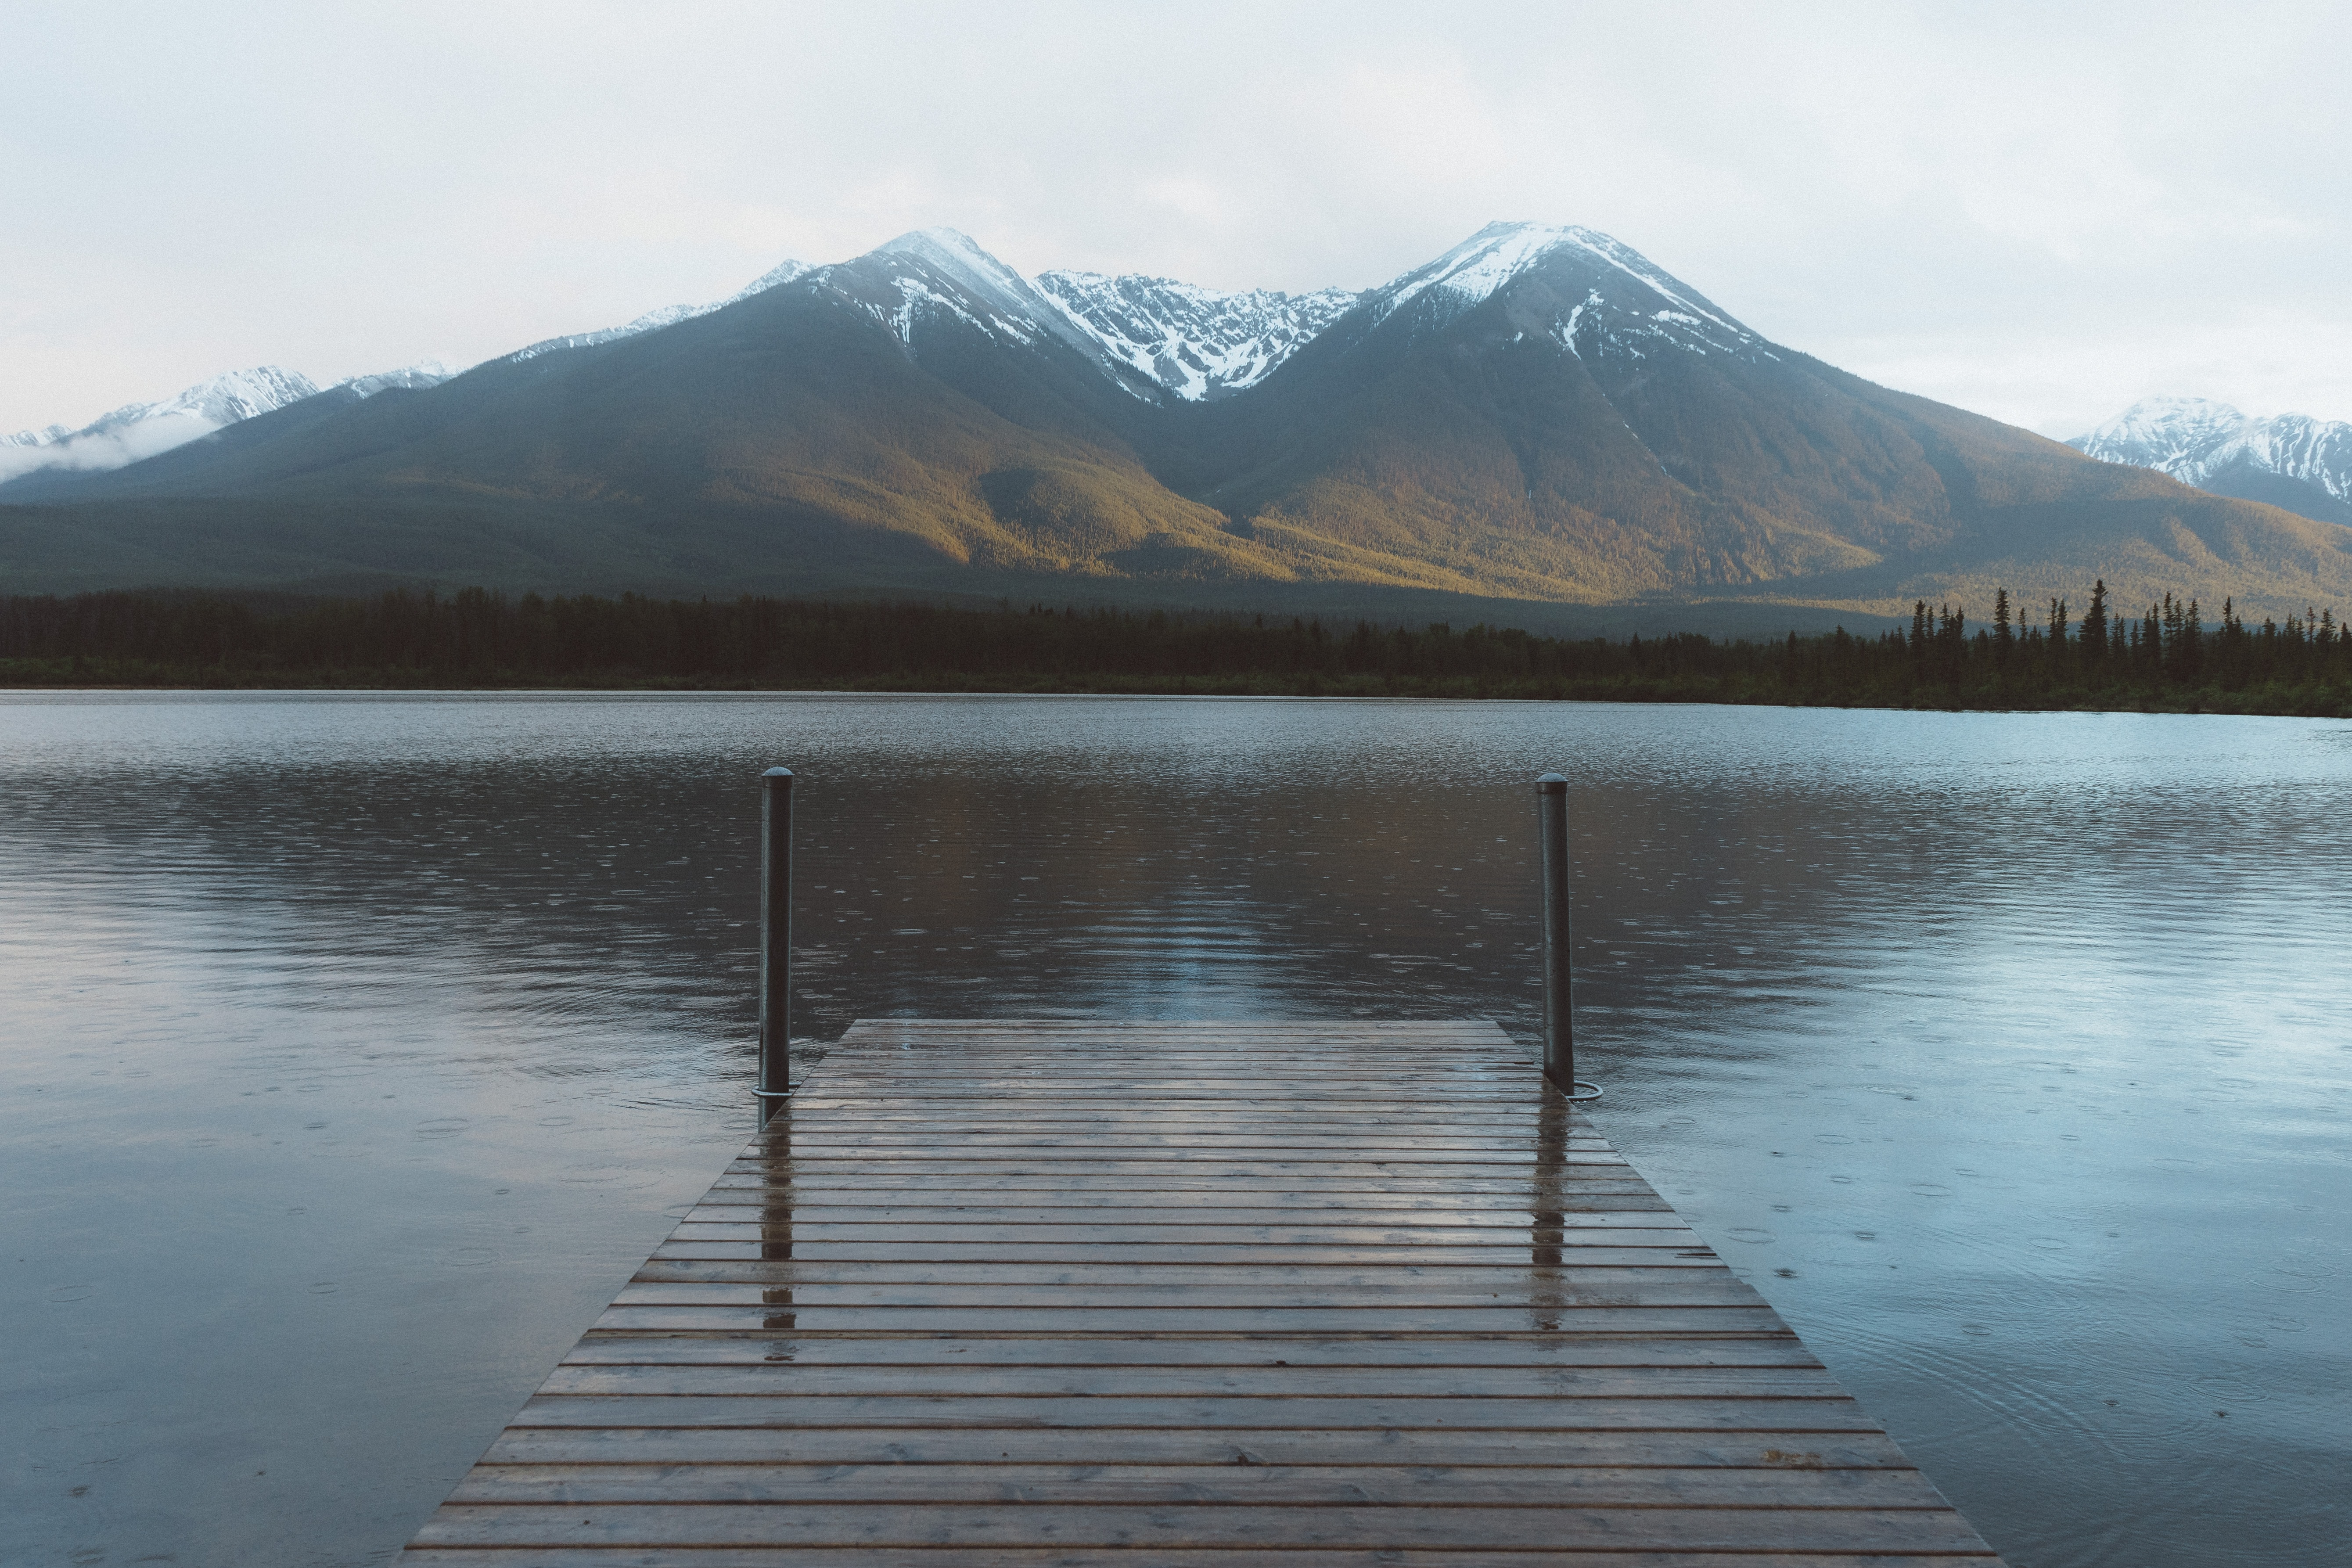 A dock over calm water that looks out to the snowcapped mountains that are reflected in the lake